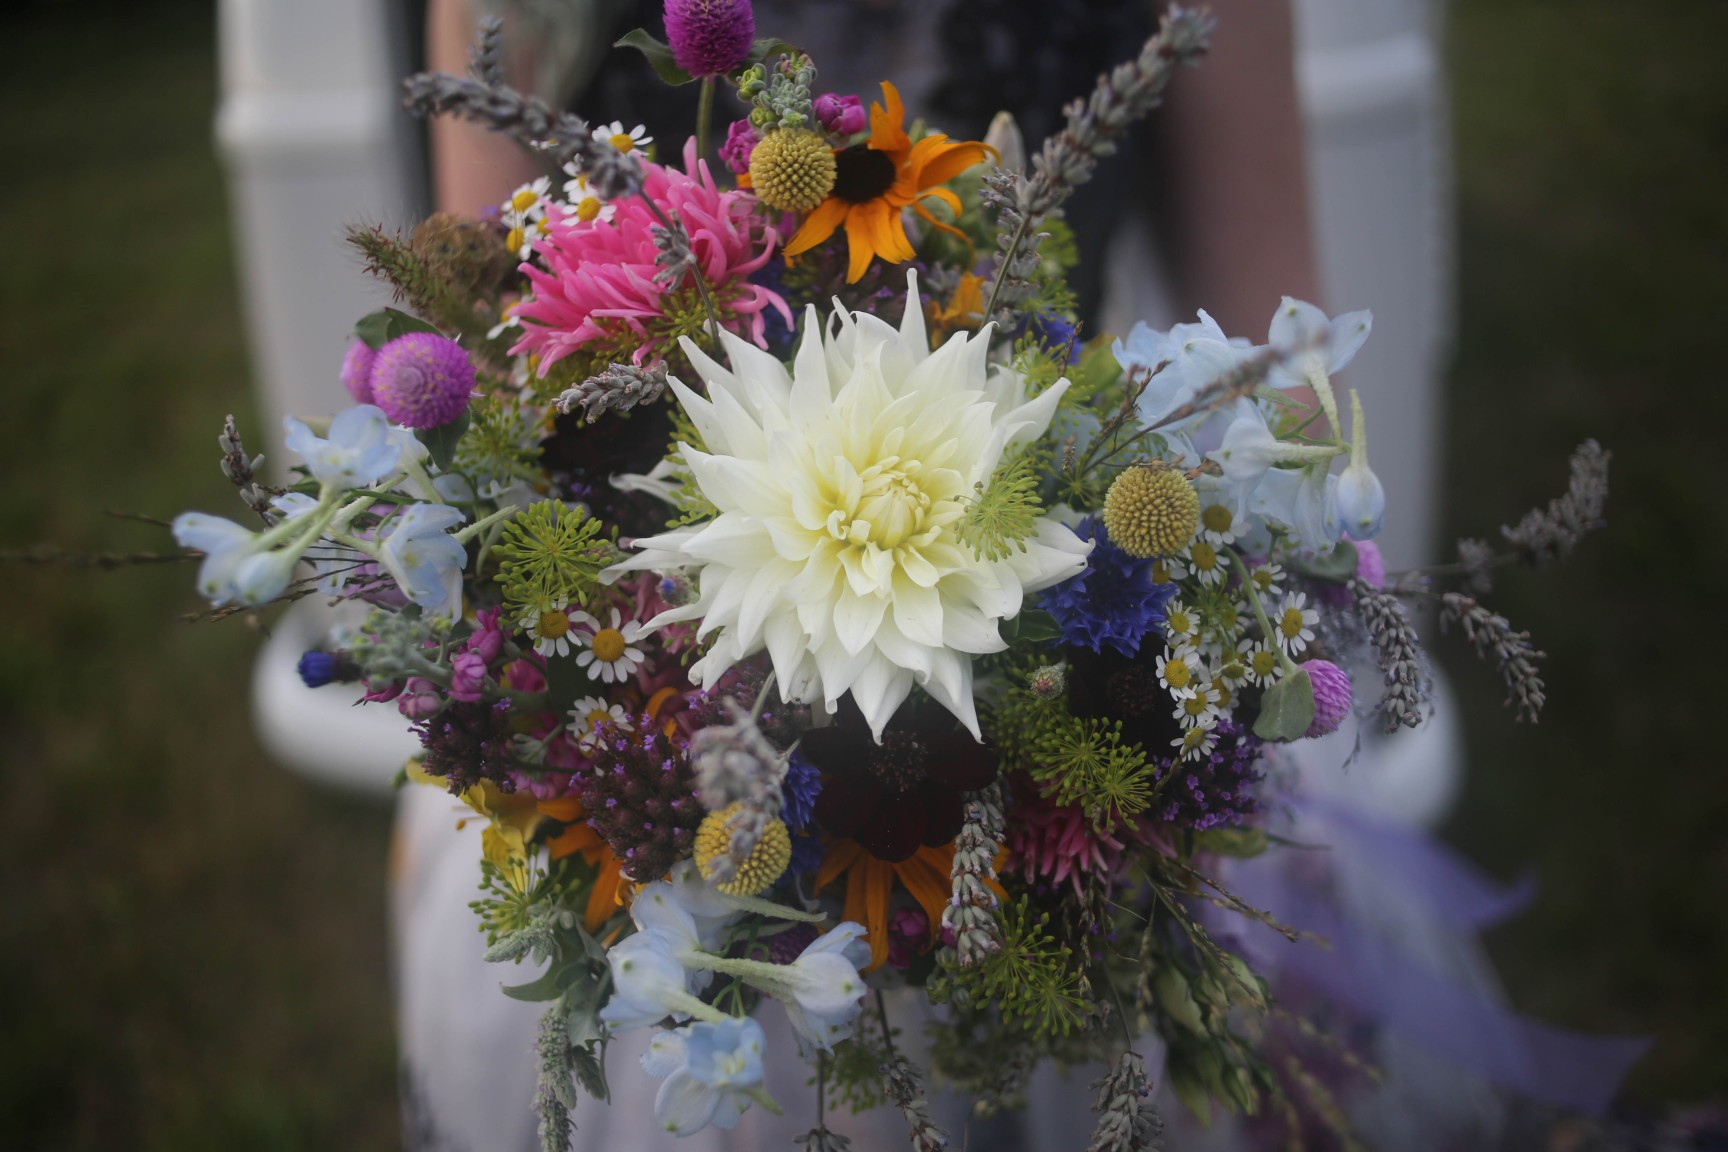 nature wedding - pagan wedding - ethereal wedding - spiritual wedding - alternative wedding - mystical wedding - quirky wedding - colourful wedding bouquet - foraged wedding bouquet